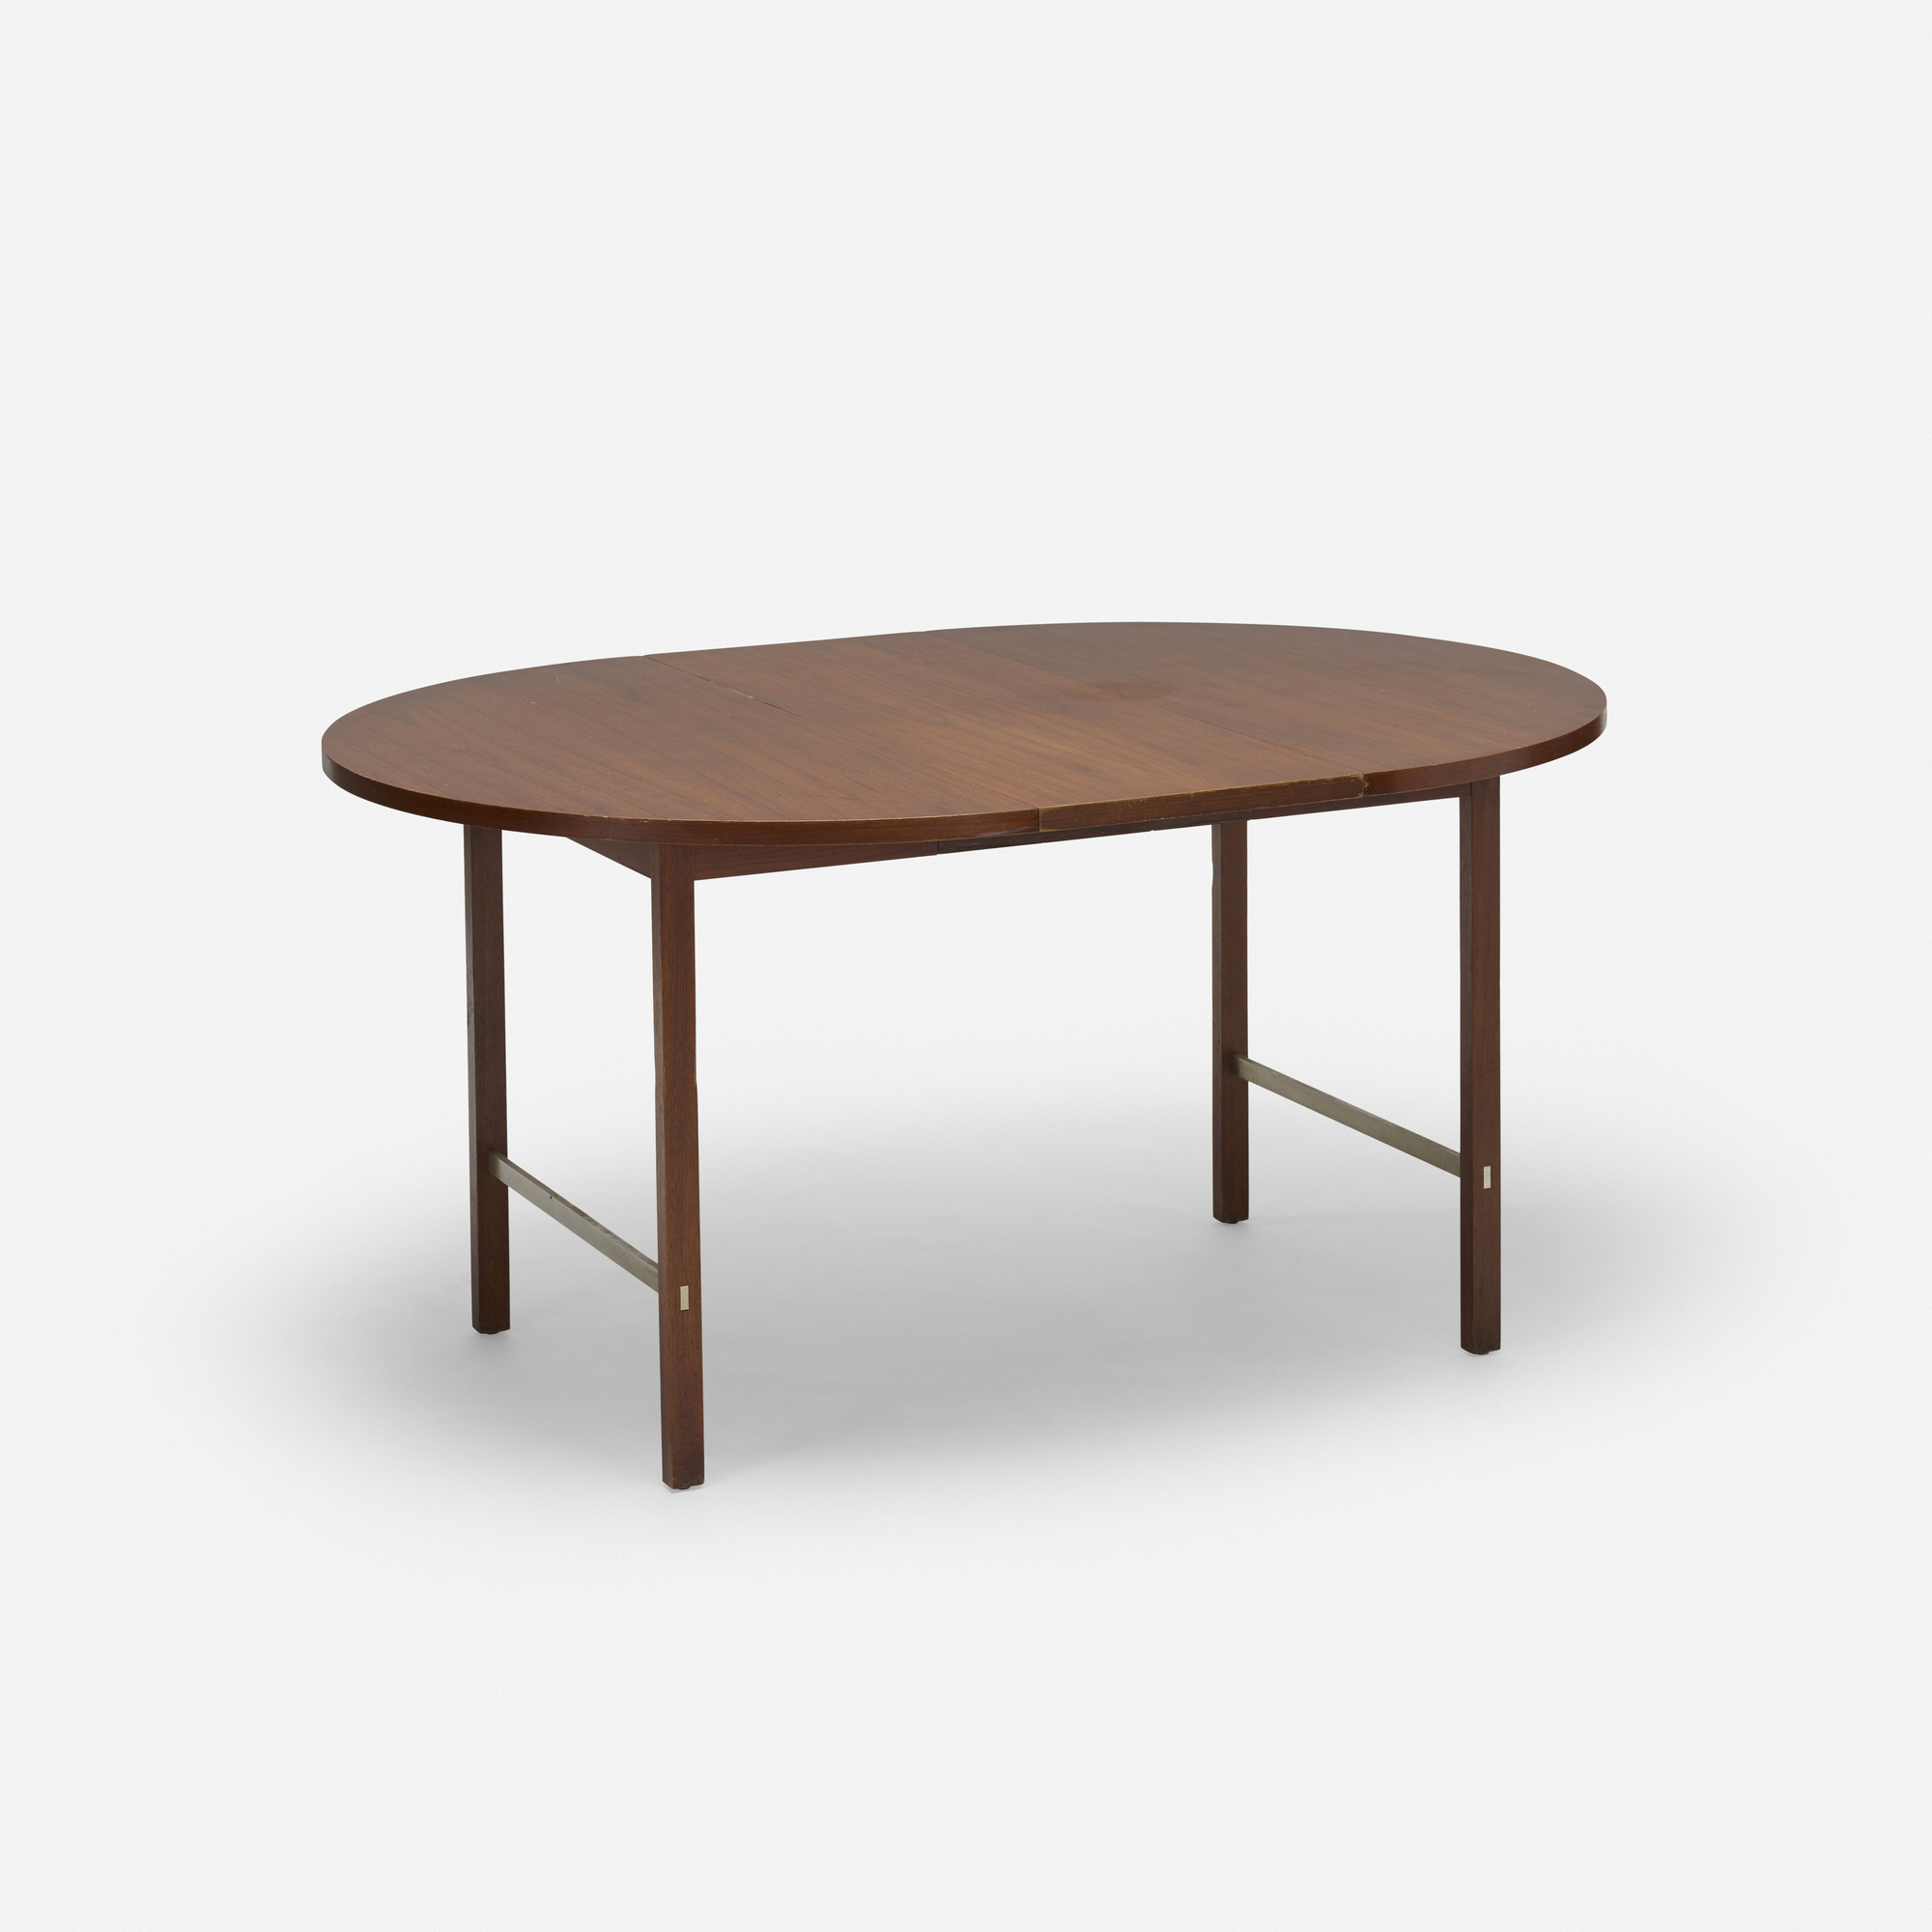 556: Paul McCobb / dining table (1 of 2)